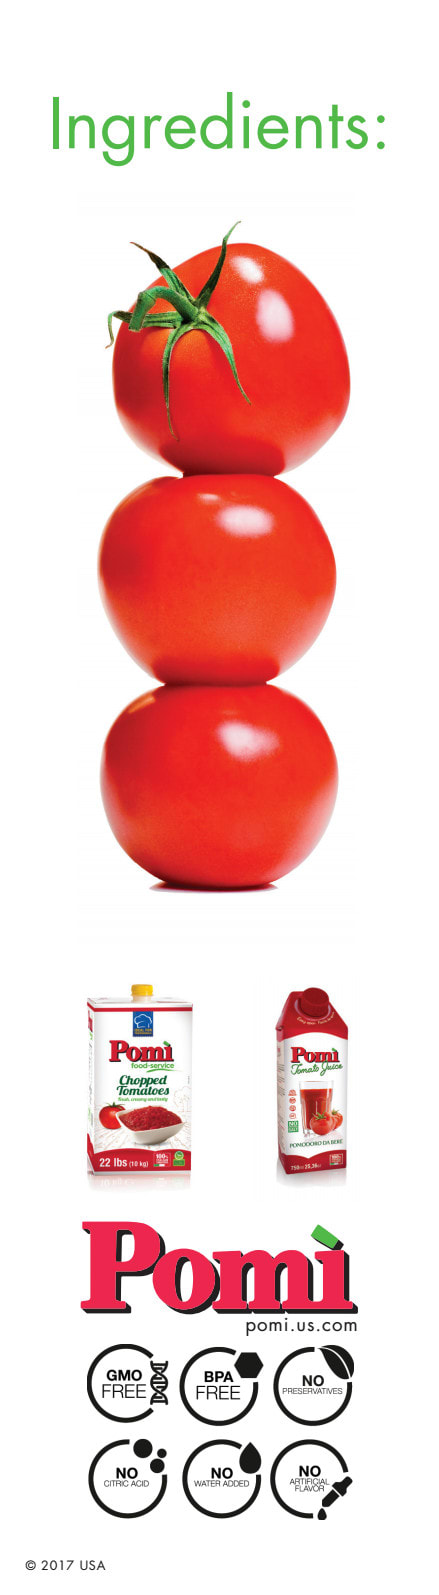 Pomi Tomatoes Banner